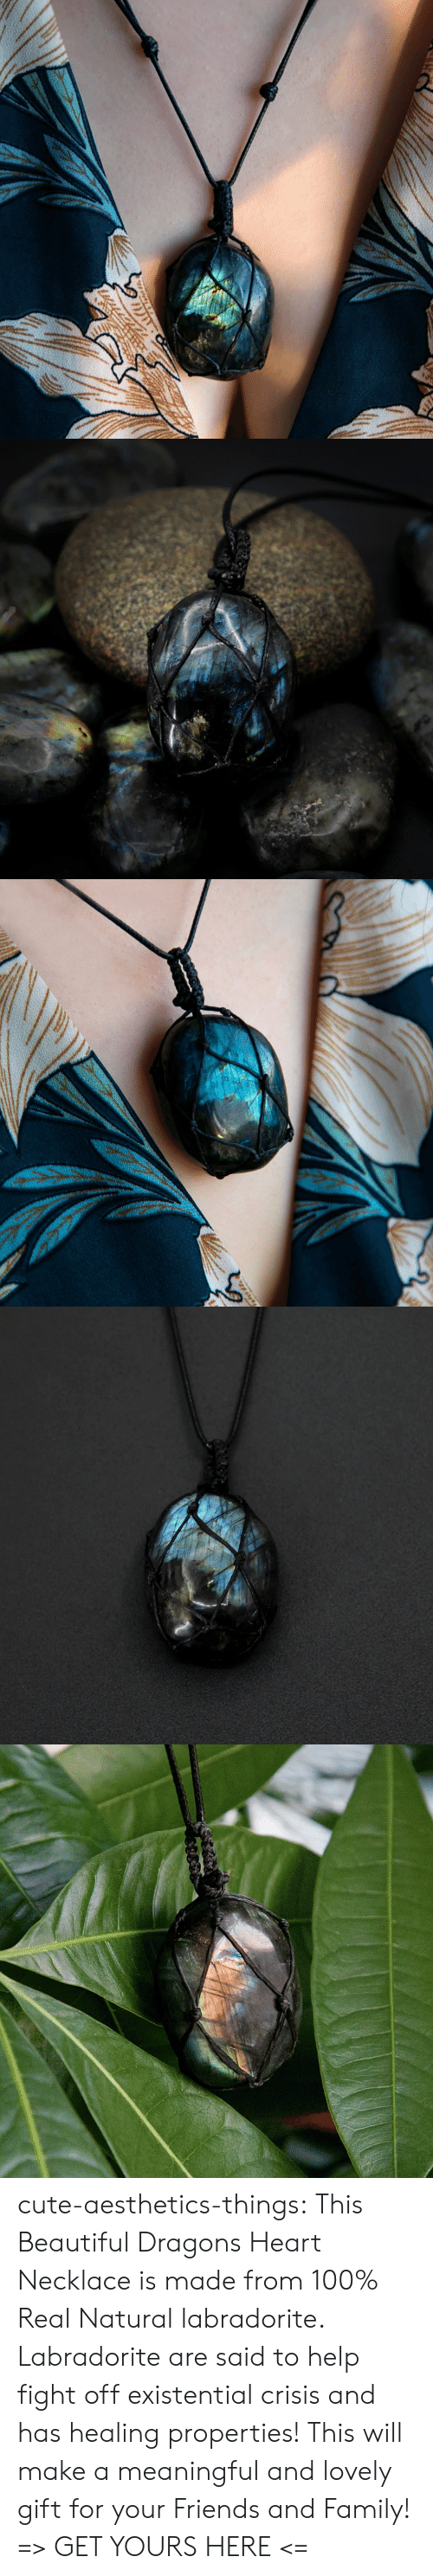 Beautiful, Cute, and Family: cute-aesthetics-things: This Beautiful Dragons Heart Necklace is made from 100% Real Natural labradorite. Labradorite are said to help fight off existential crisis and has healing properties! This will make a meaningful and lovely gift for your Friends and Family! => GET YOURS HERE <=